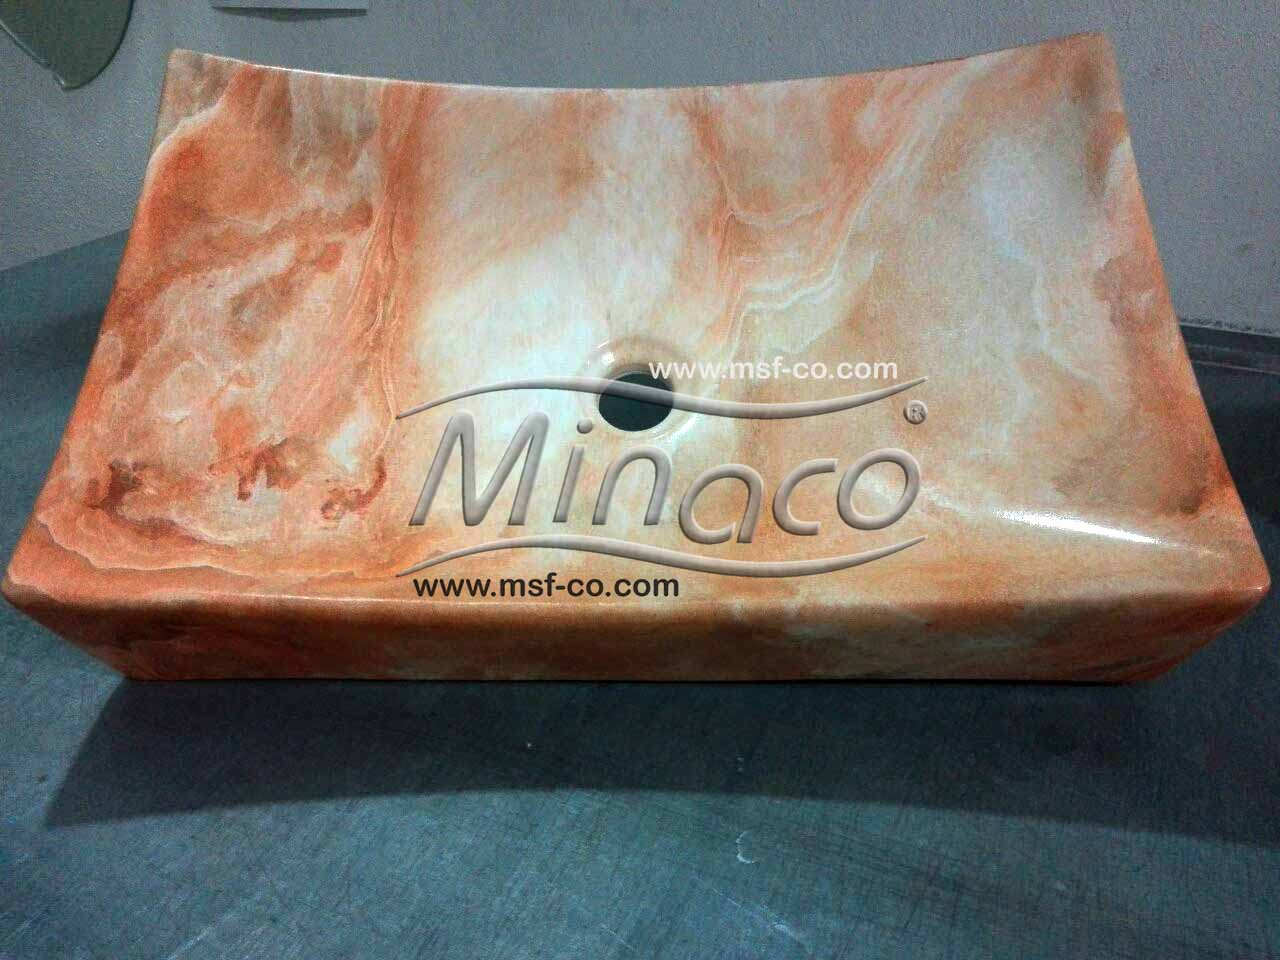 ???? ??????? watertransfer hydrographic printing minaco ??????.jpg